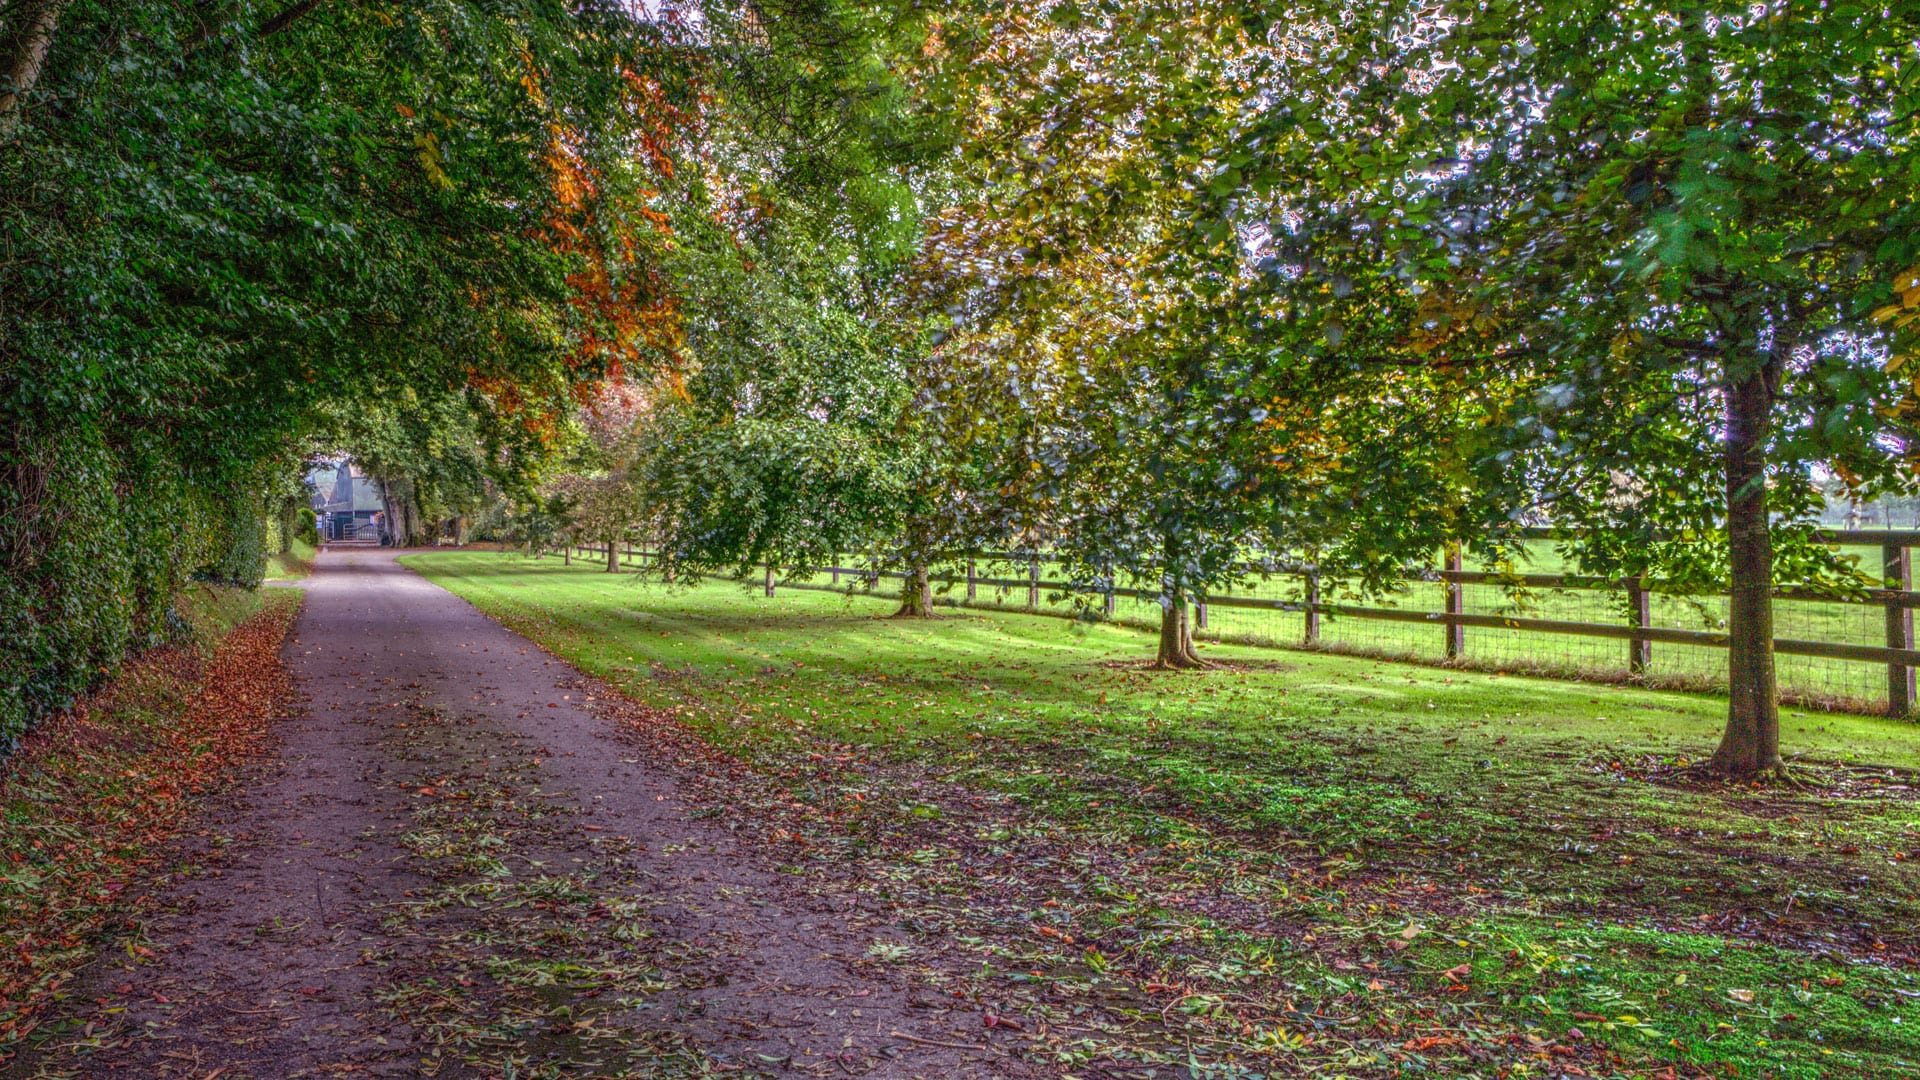 Vibrant-Outdoors-Escape-Nature-Field-Trees-Farm-Holiday-Homes-Ireland-Meath-Dunshaughlin-Self-Catering